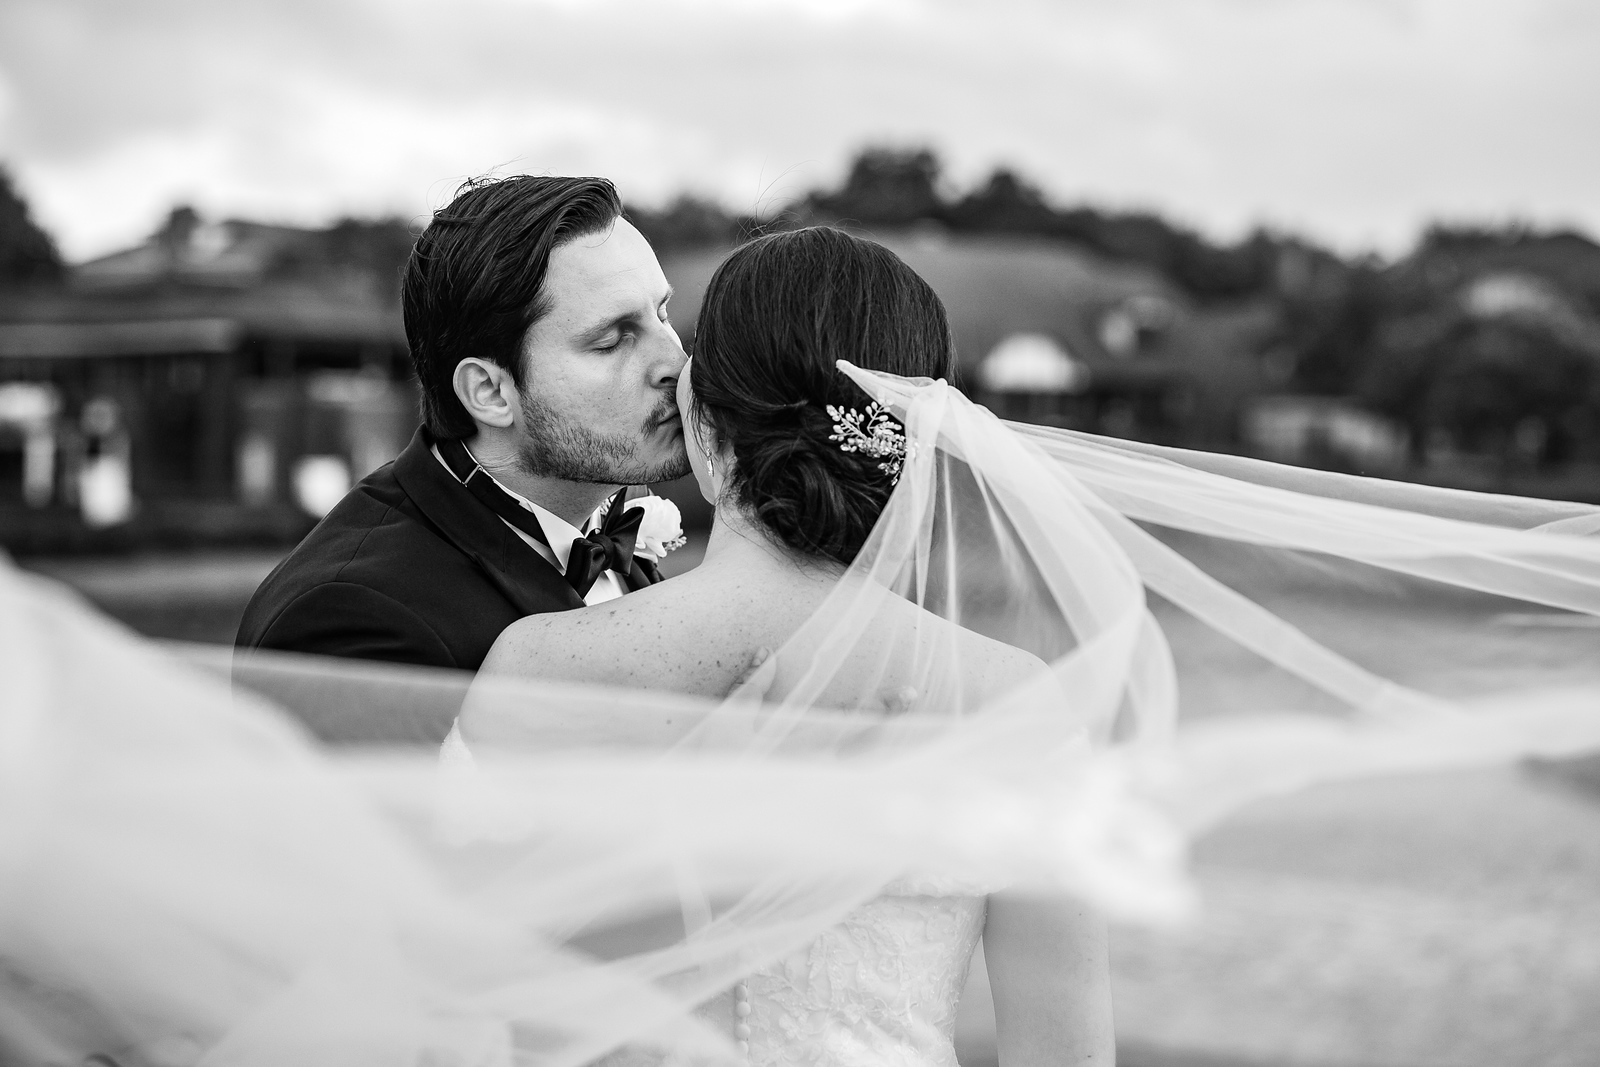 black and white photo of a groom kissing his wife on the cheek as her veil whips around in the wind